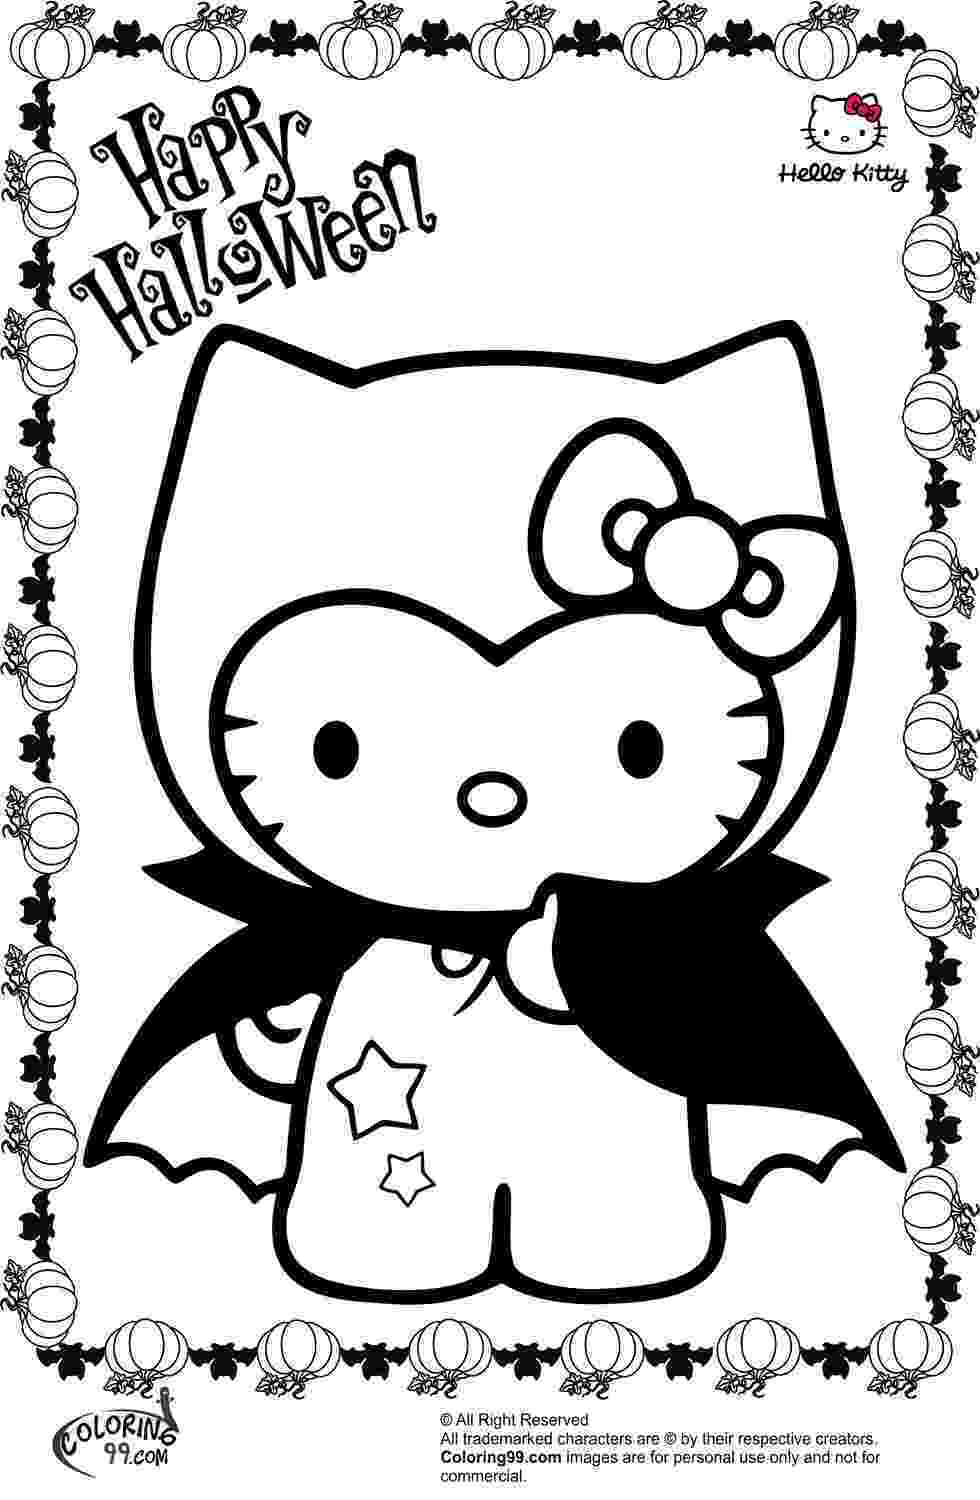 kitty pictures to print hello kitty rainbow coloring page free printable pictures kitty to print